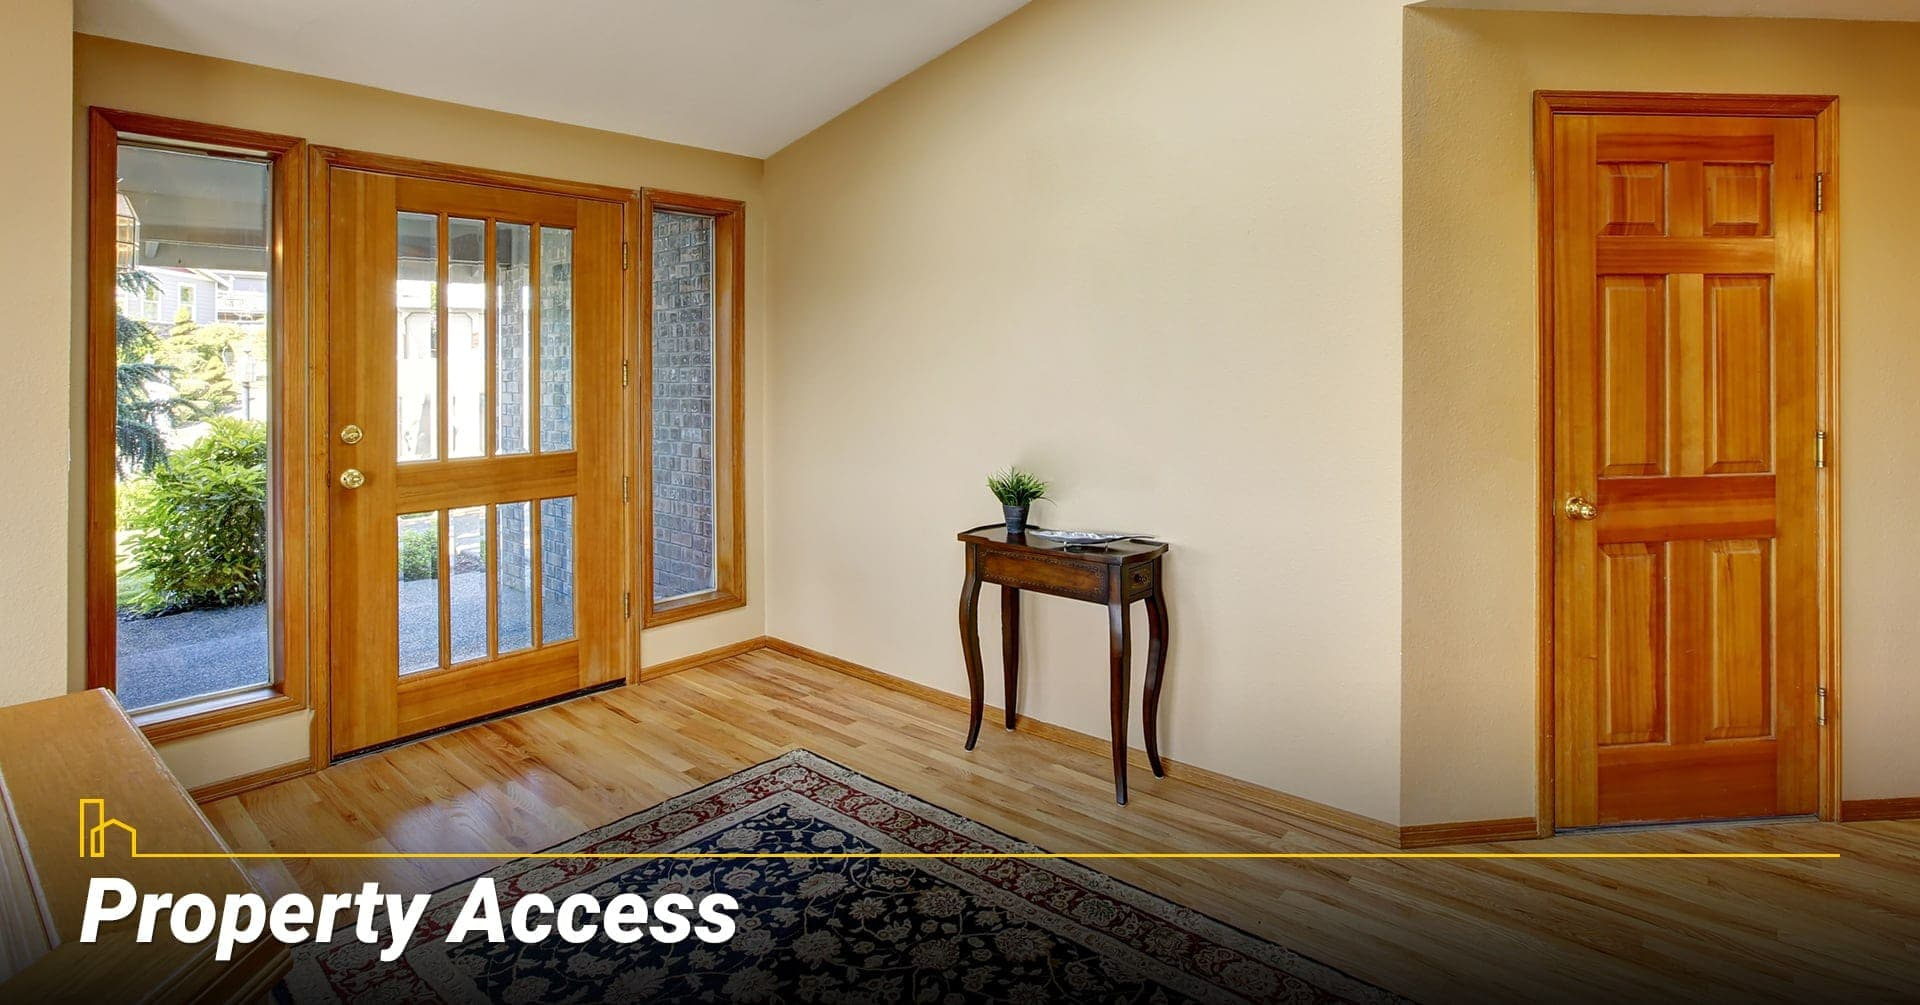 Property Access, provide access to your property